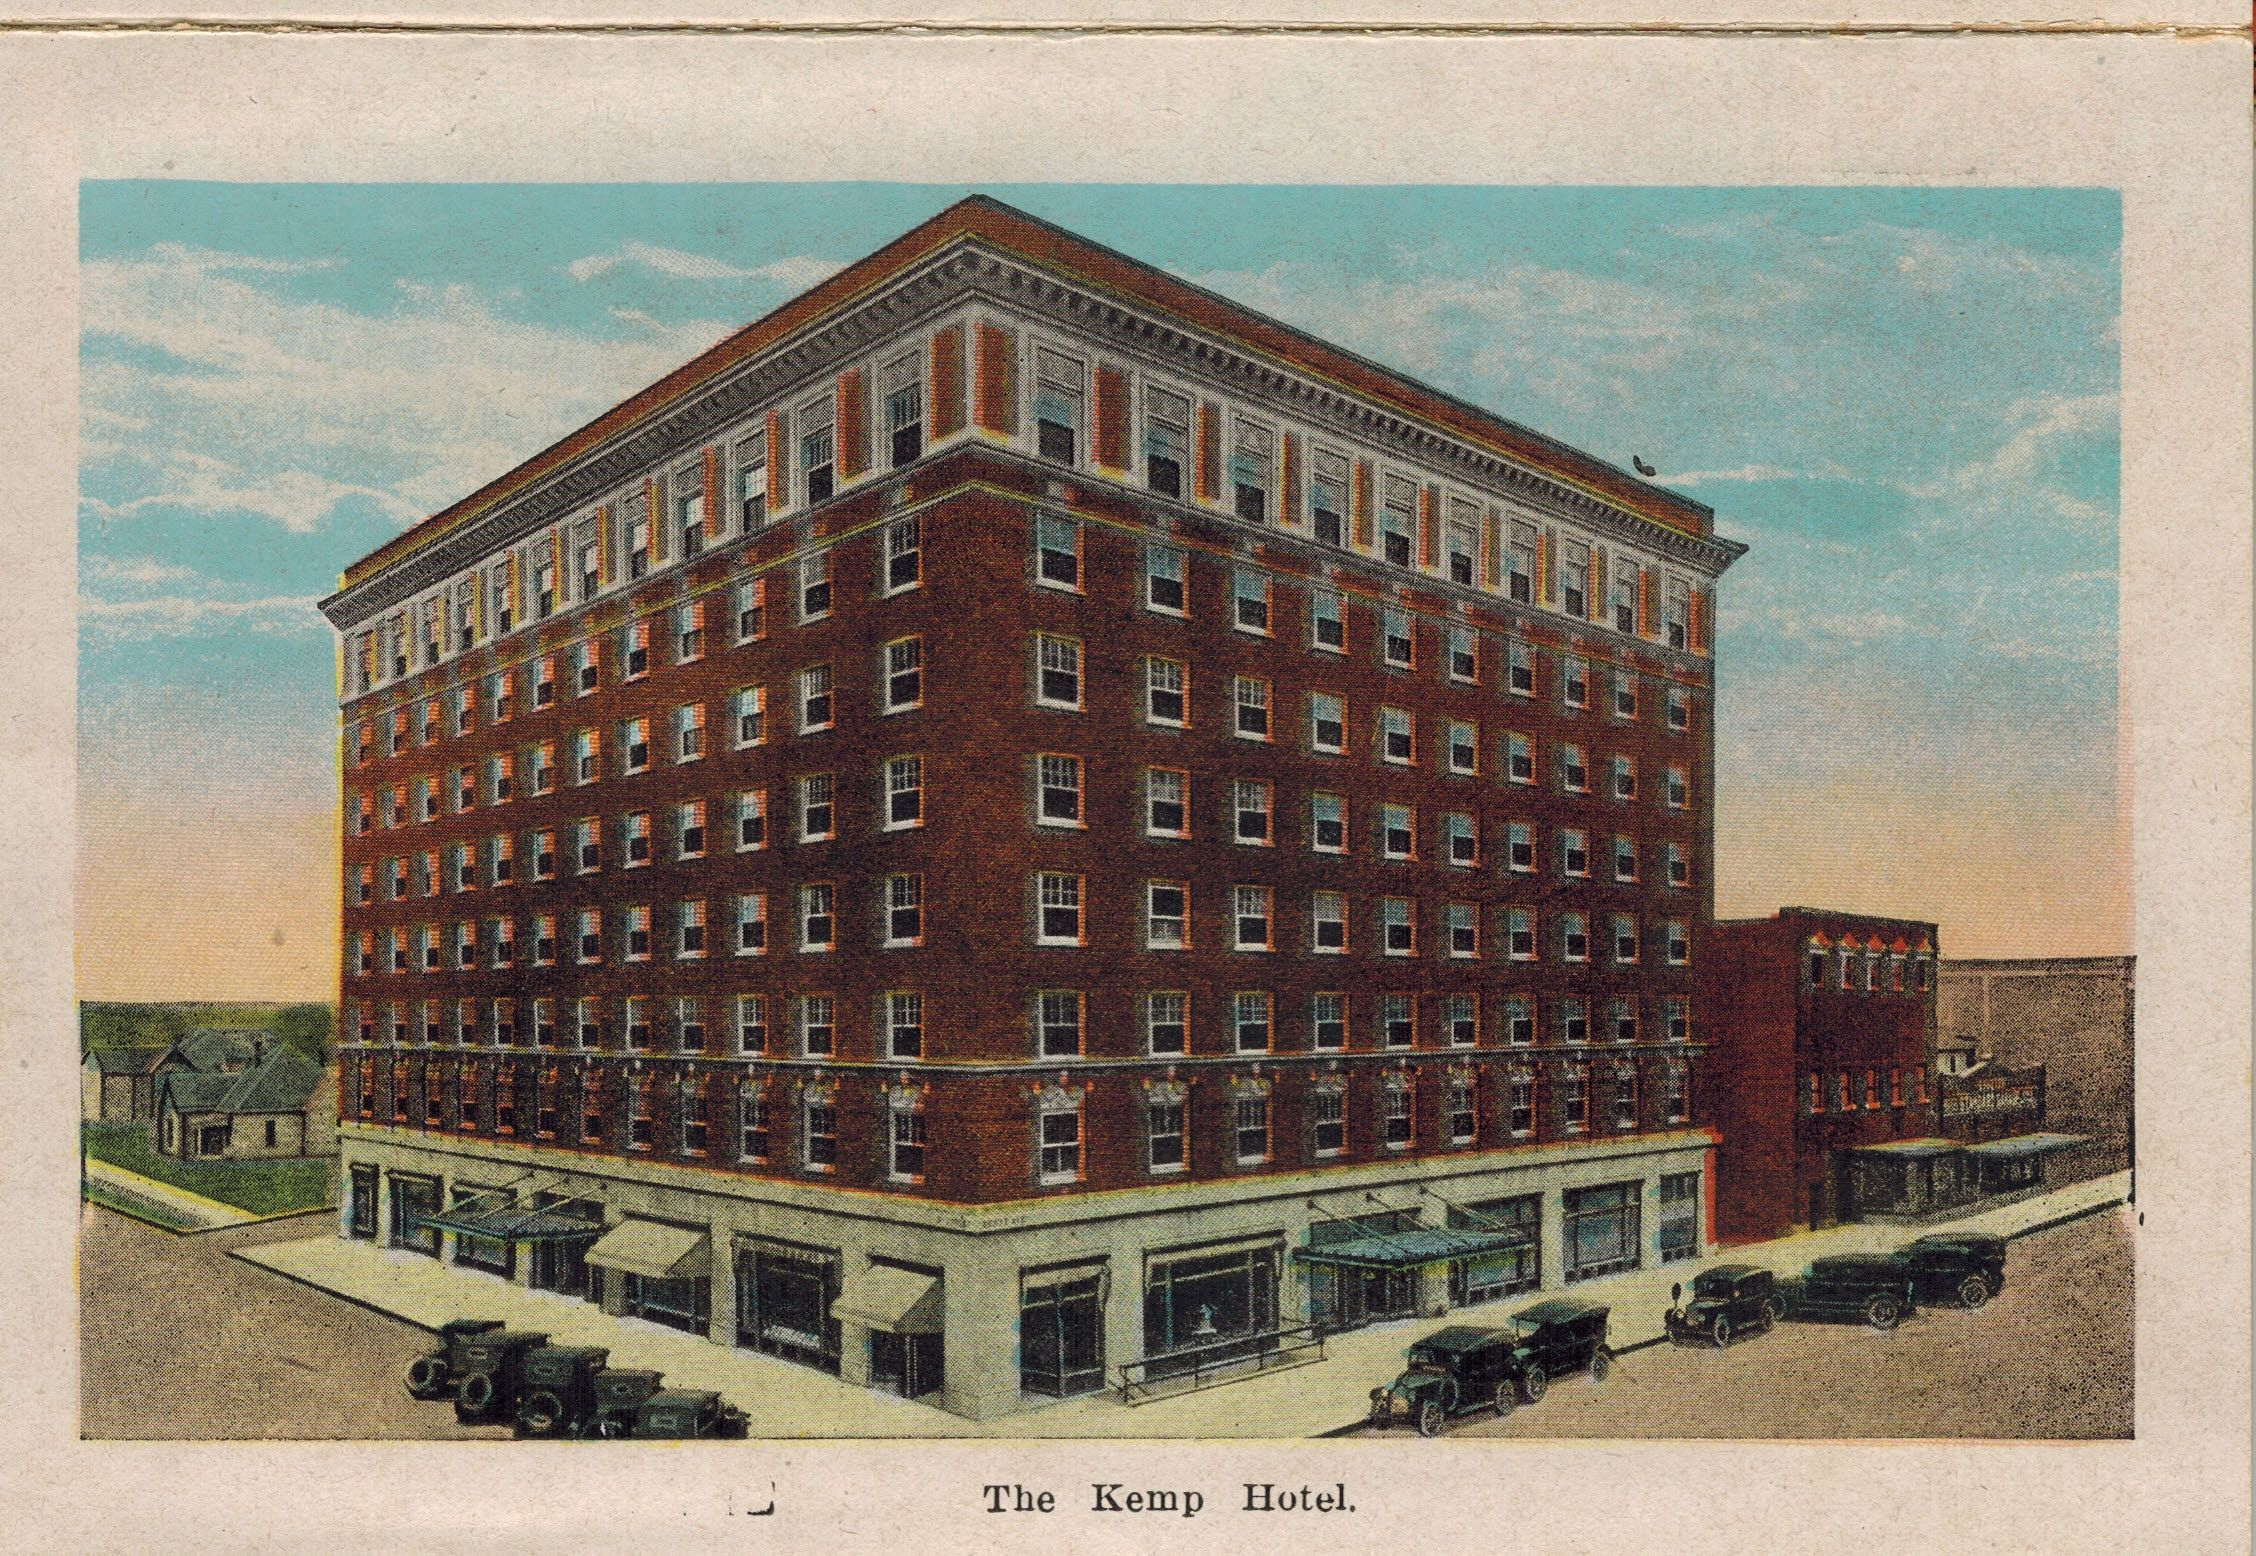 The Kemp Hotel From Wichita Falls Texas Postcard Booklet